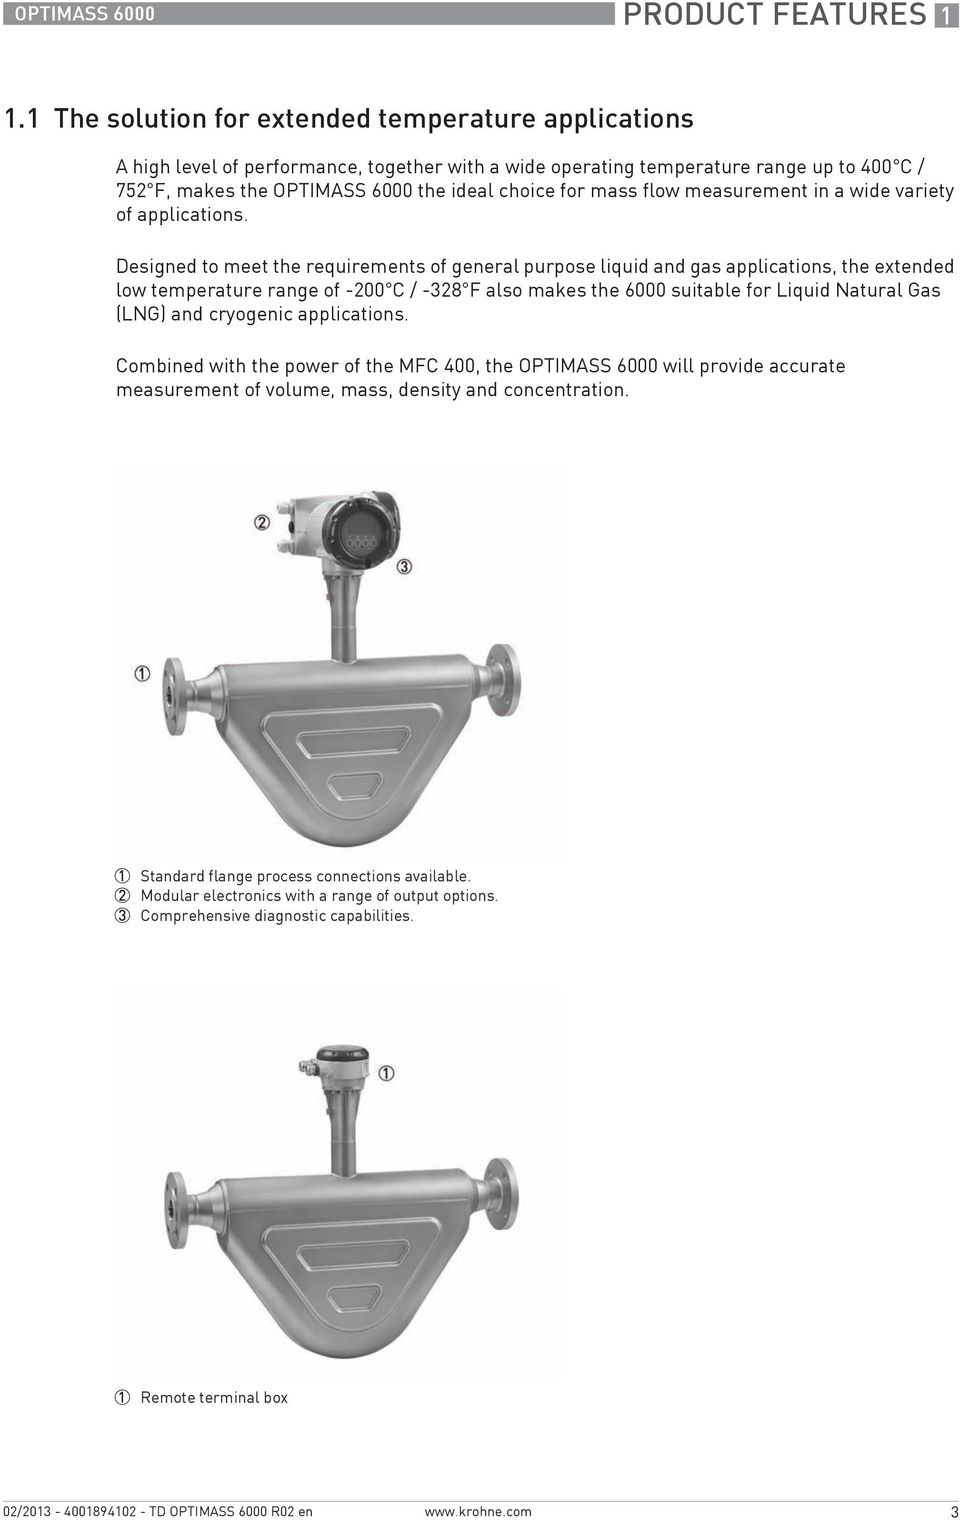 mass flow measurement in a wide variety of applications.